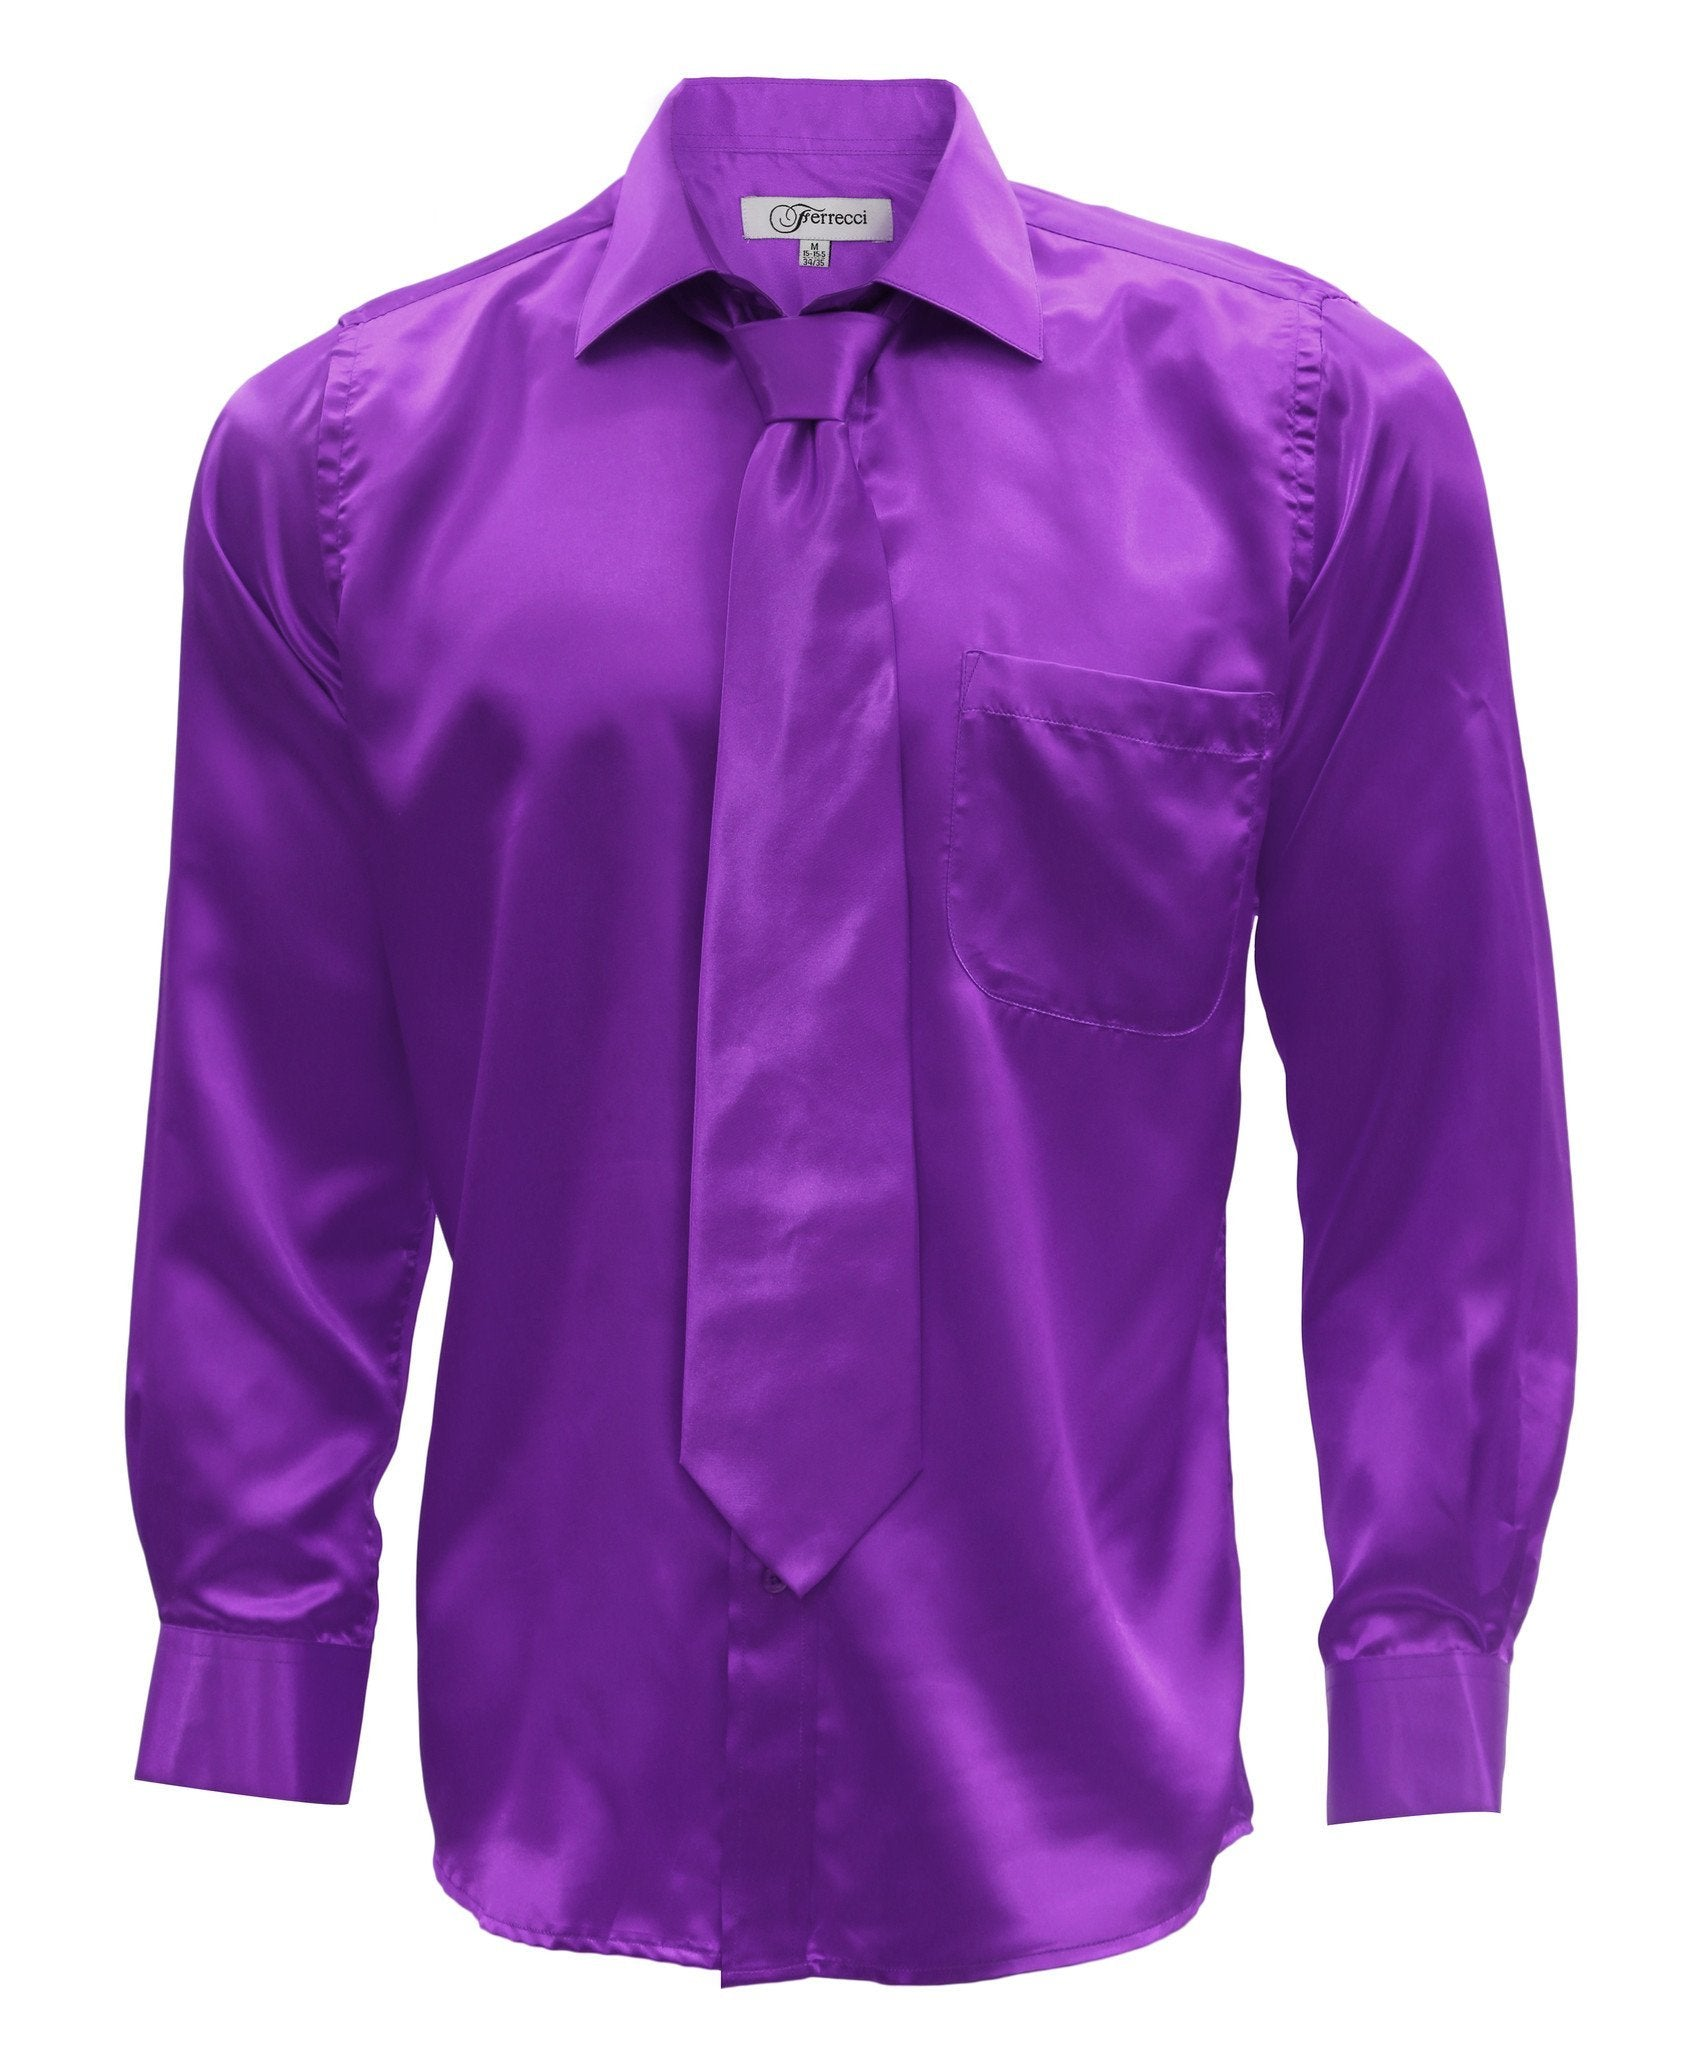 Purple Satin Regular Fit Dress Shirt, Tie & Hanky Set - Giorgio's Menswear